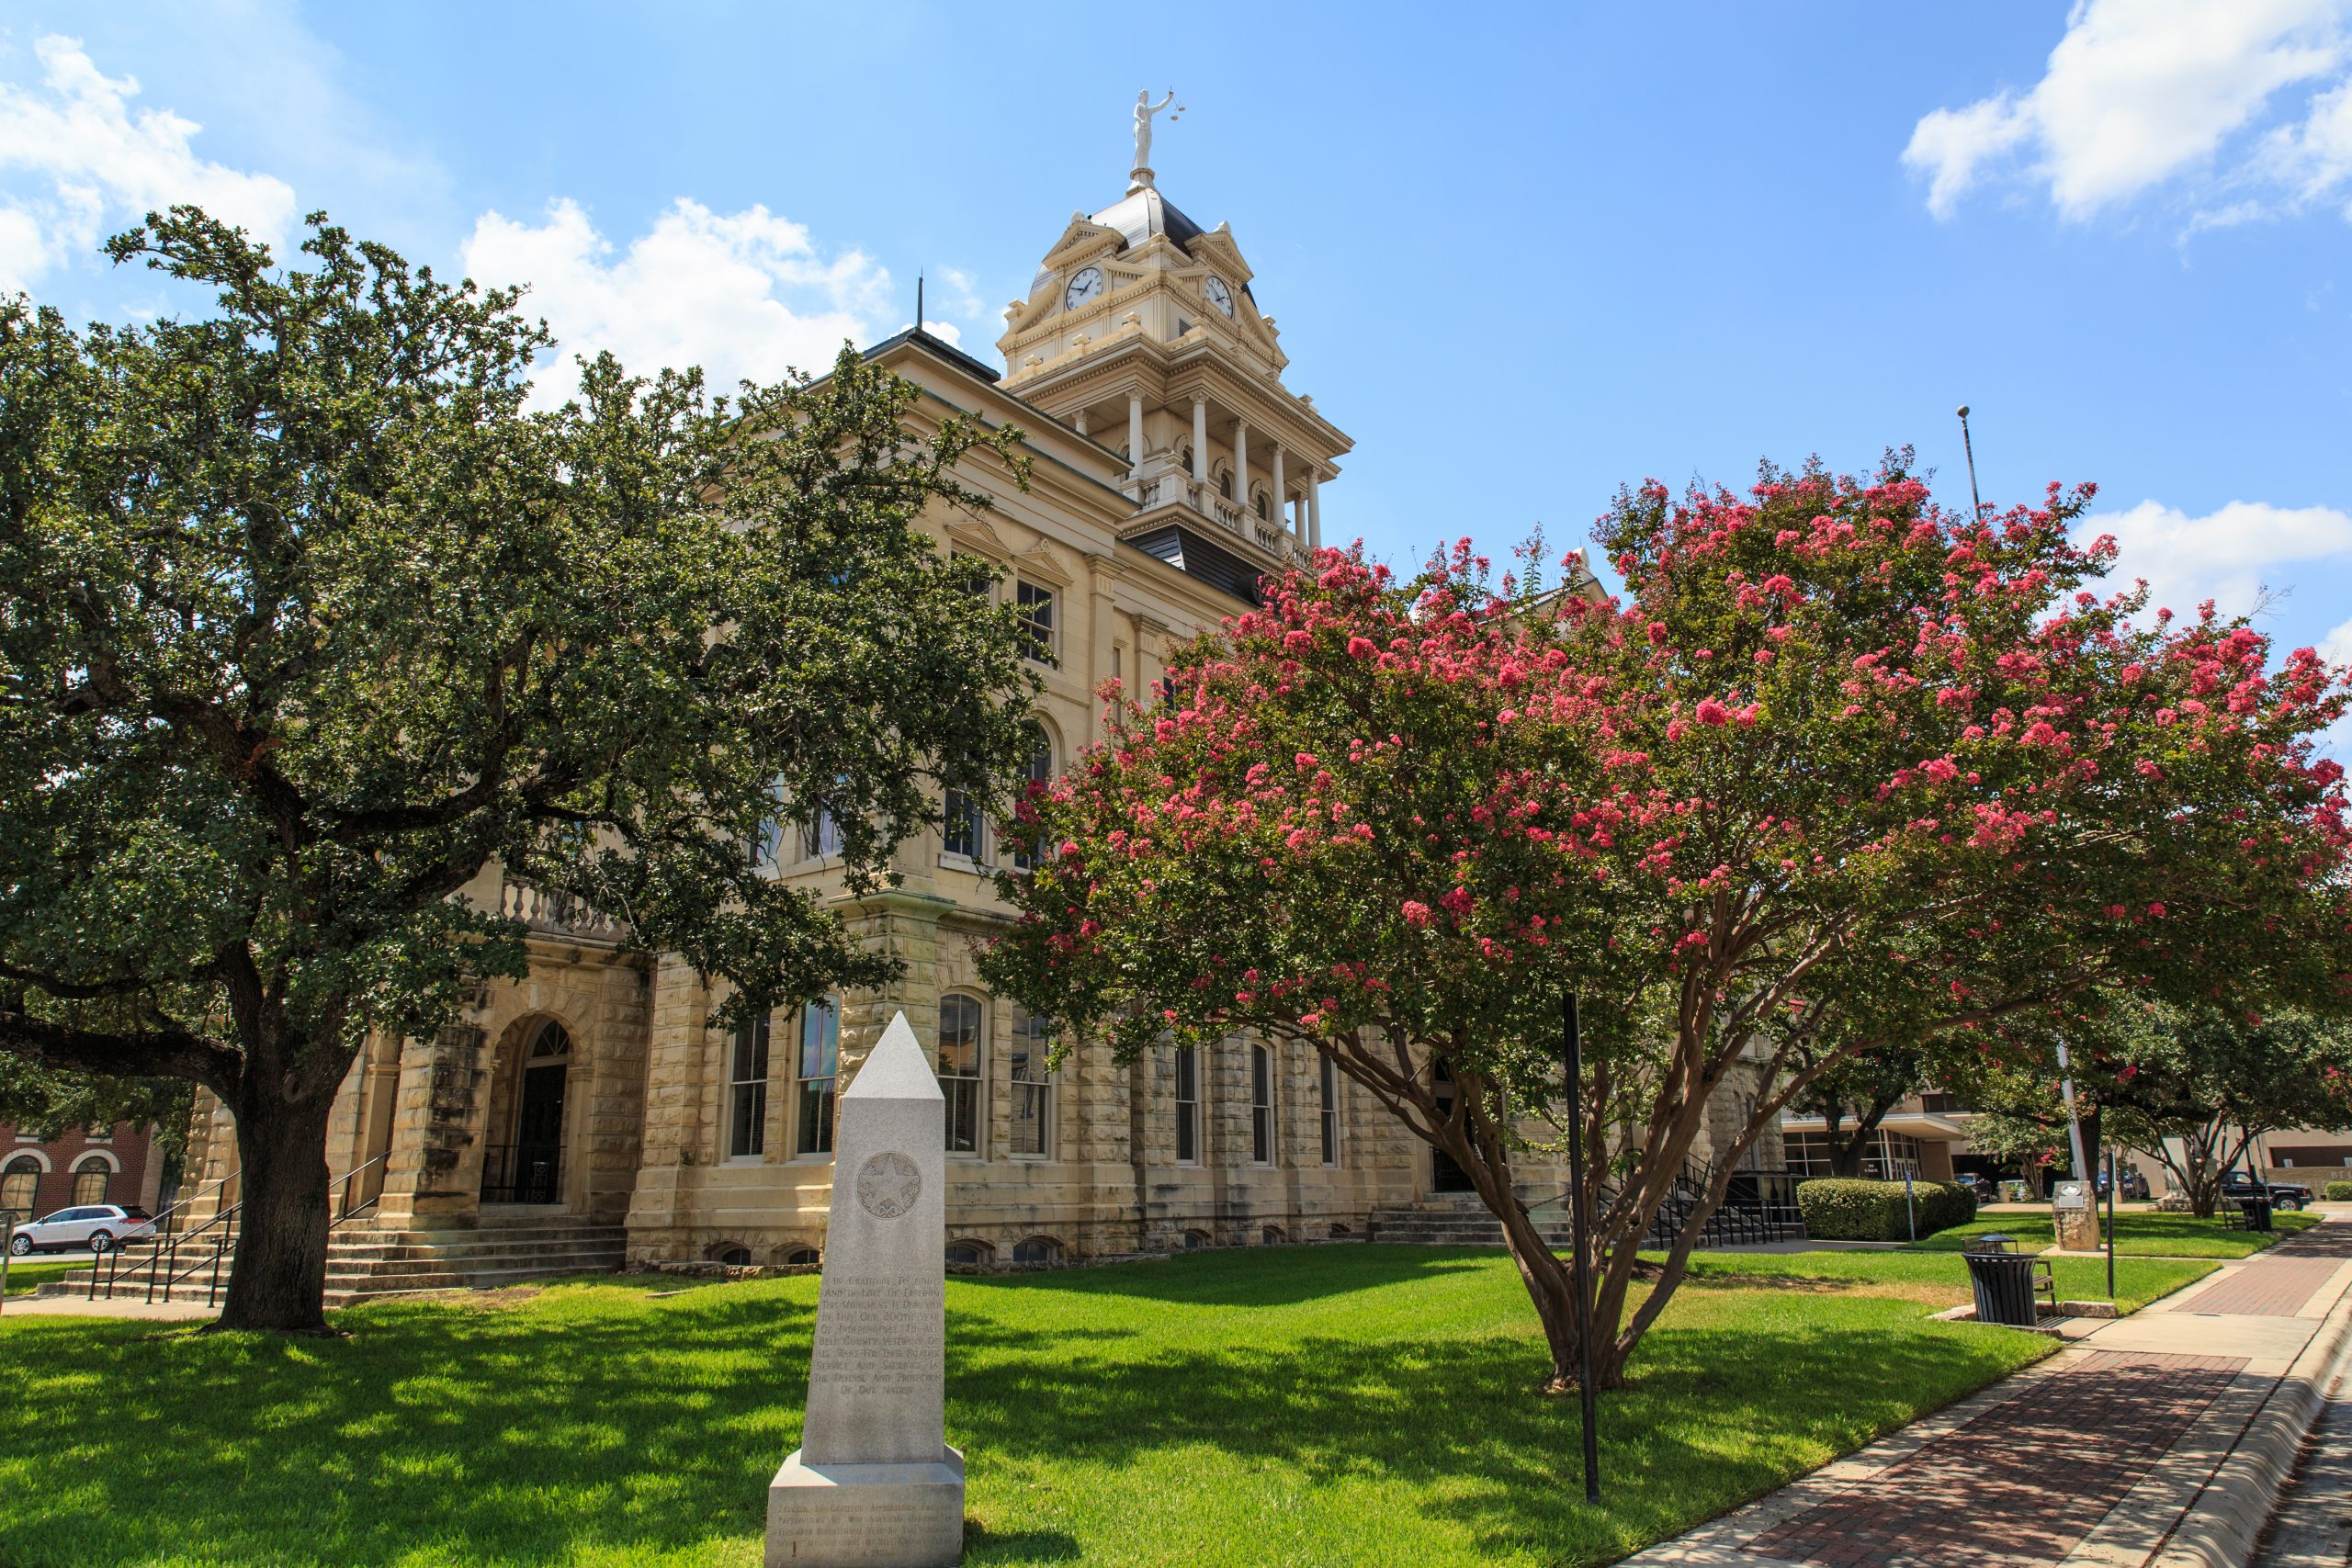 bell county courthouse with square, one of the best things to do in belton texas, with trees blooming pink flowers in the foreground